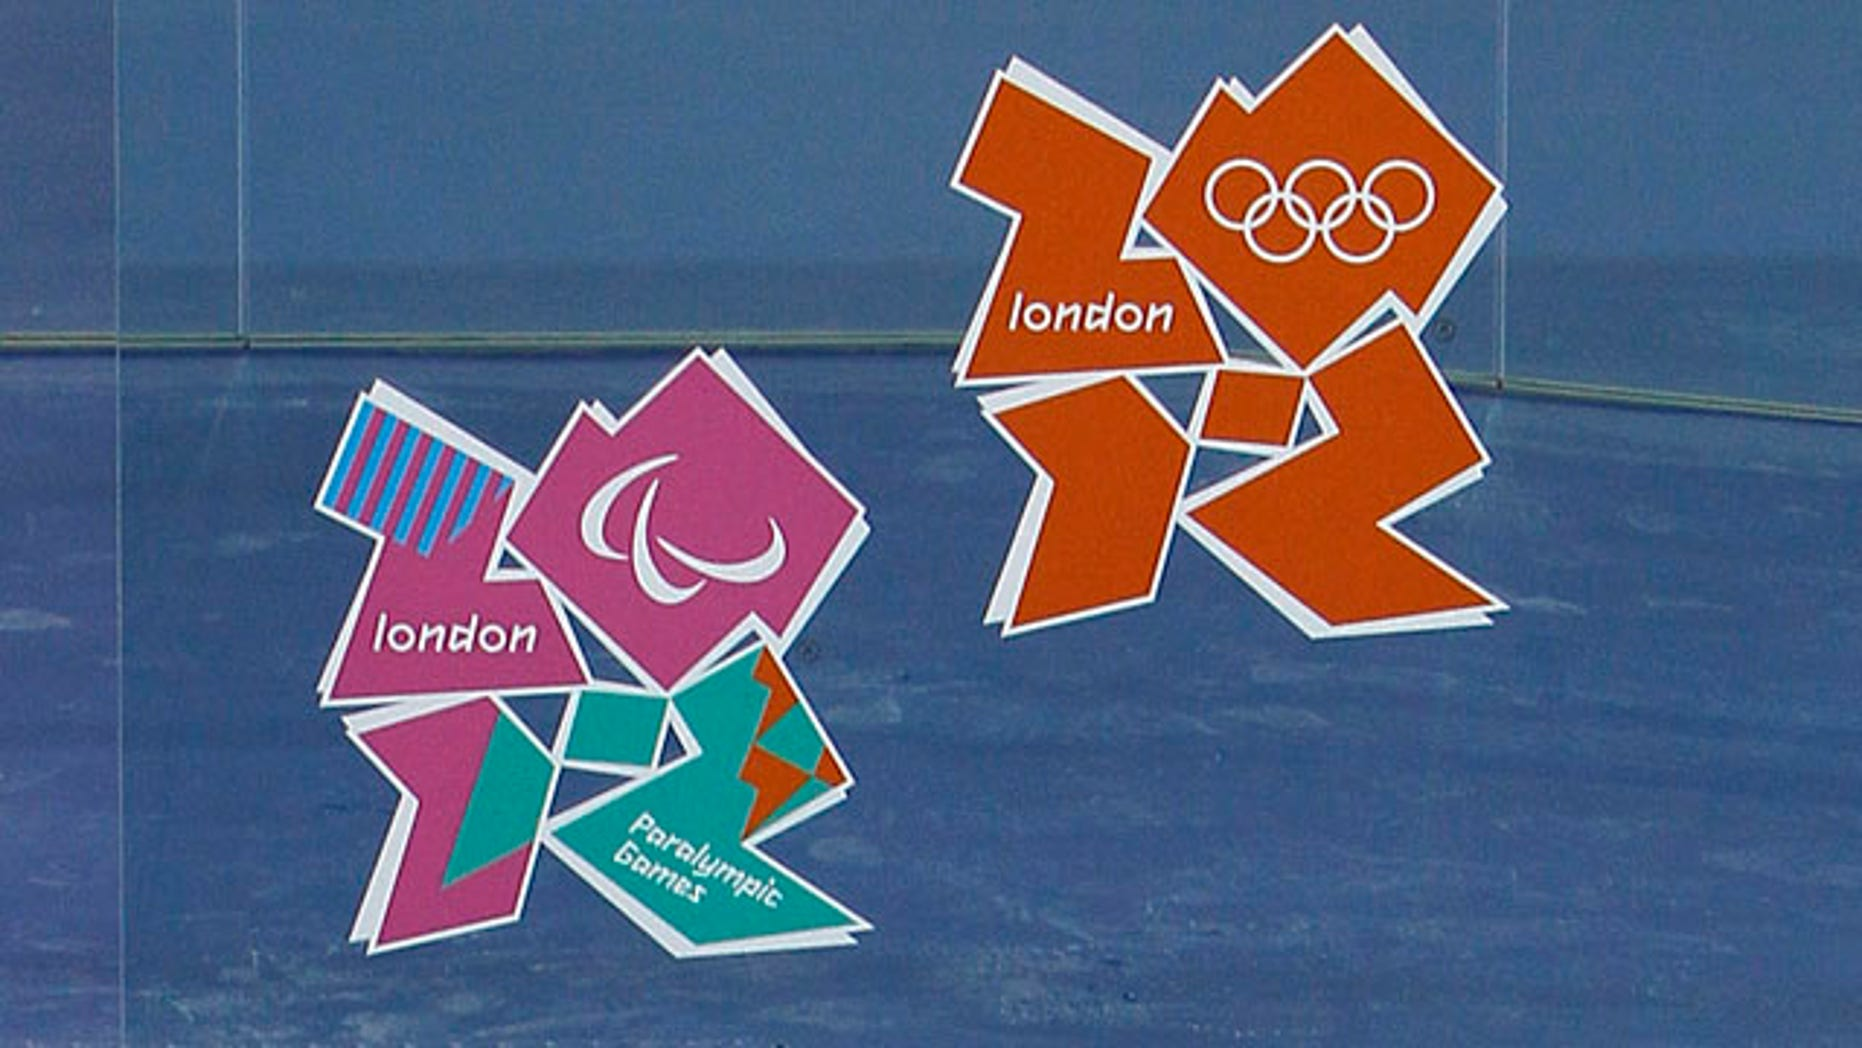 "Iran has objected to the logo for the 2012 London Olympics, claiming it is racist because it resembles the word ``Zion.'' Bahram Afsharzadeh, head of Iran's National Olympic Committee, says Iran sent a formal letter to International Olympic Committee President Jacques Rogge to criticize the emblem. The letter claims the 2012 logo spells out ""Zion,"" a biblical term which is widely recognised to refer to the city of Jerusalem. The complaints were rejected by the IOC and the London organizing committee."